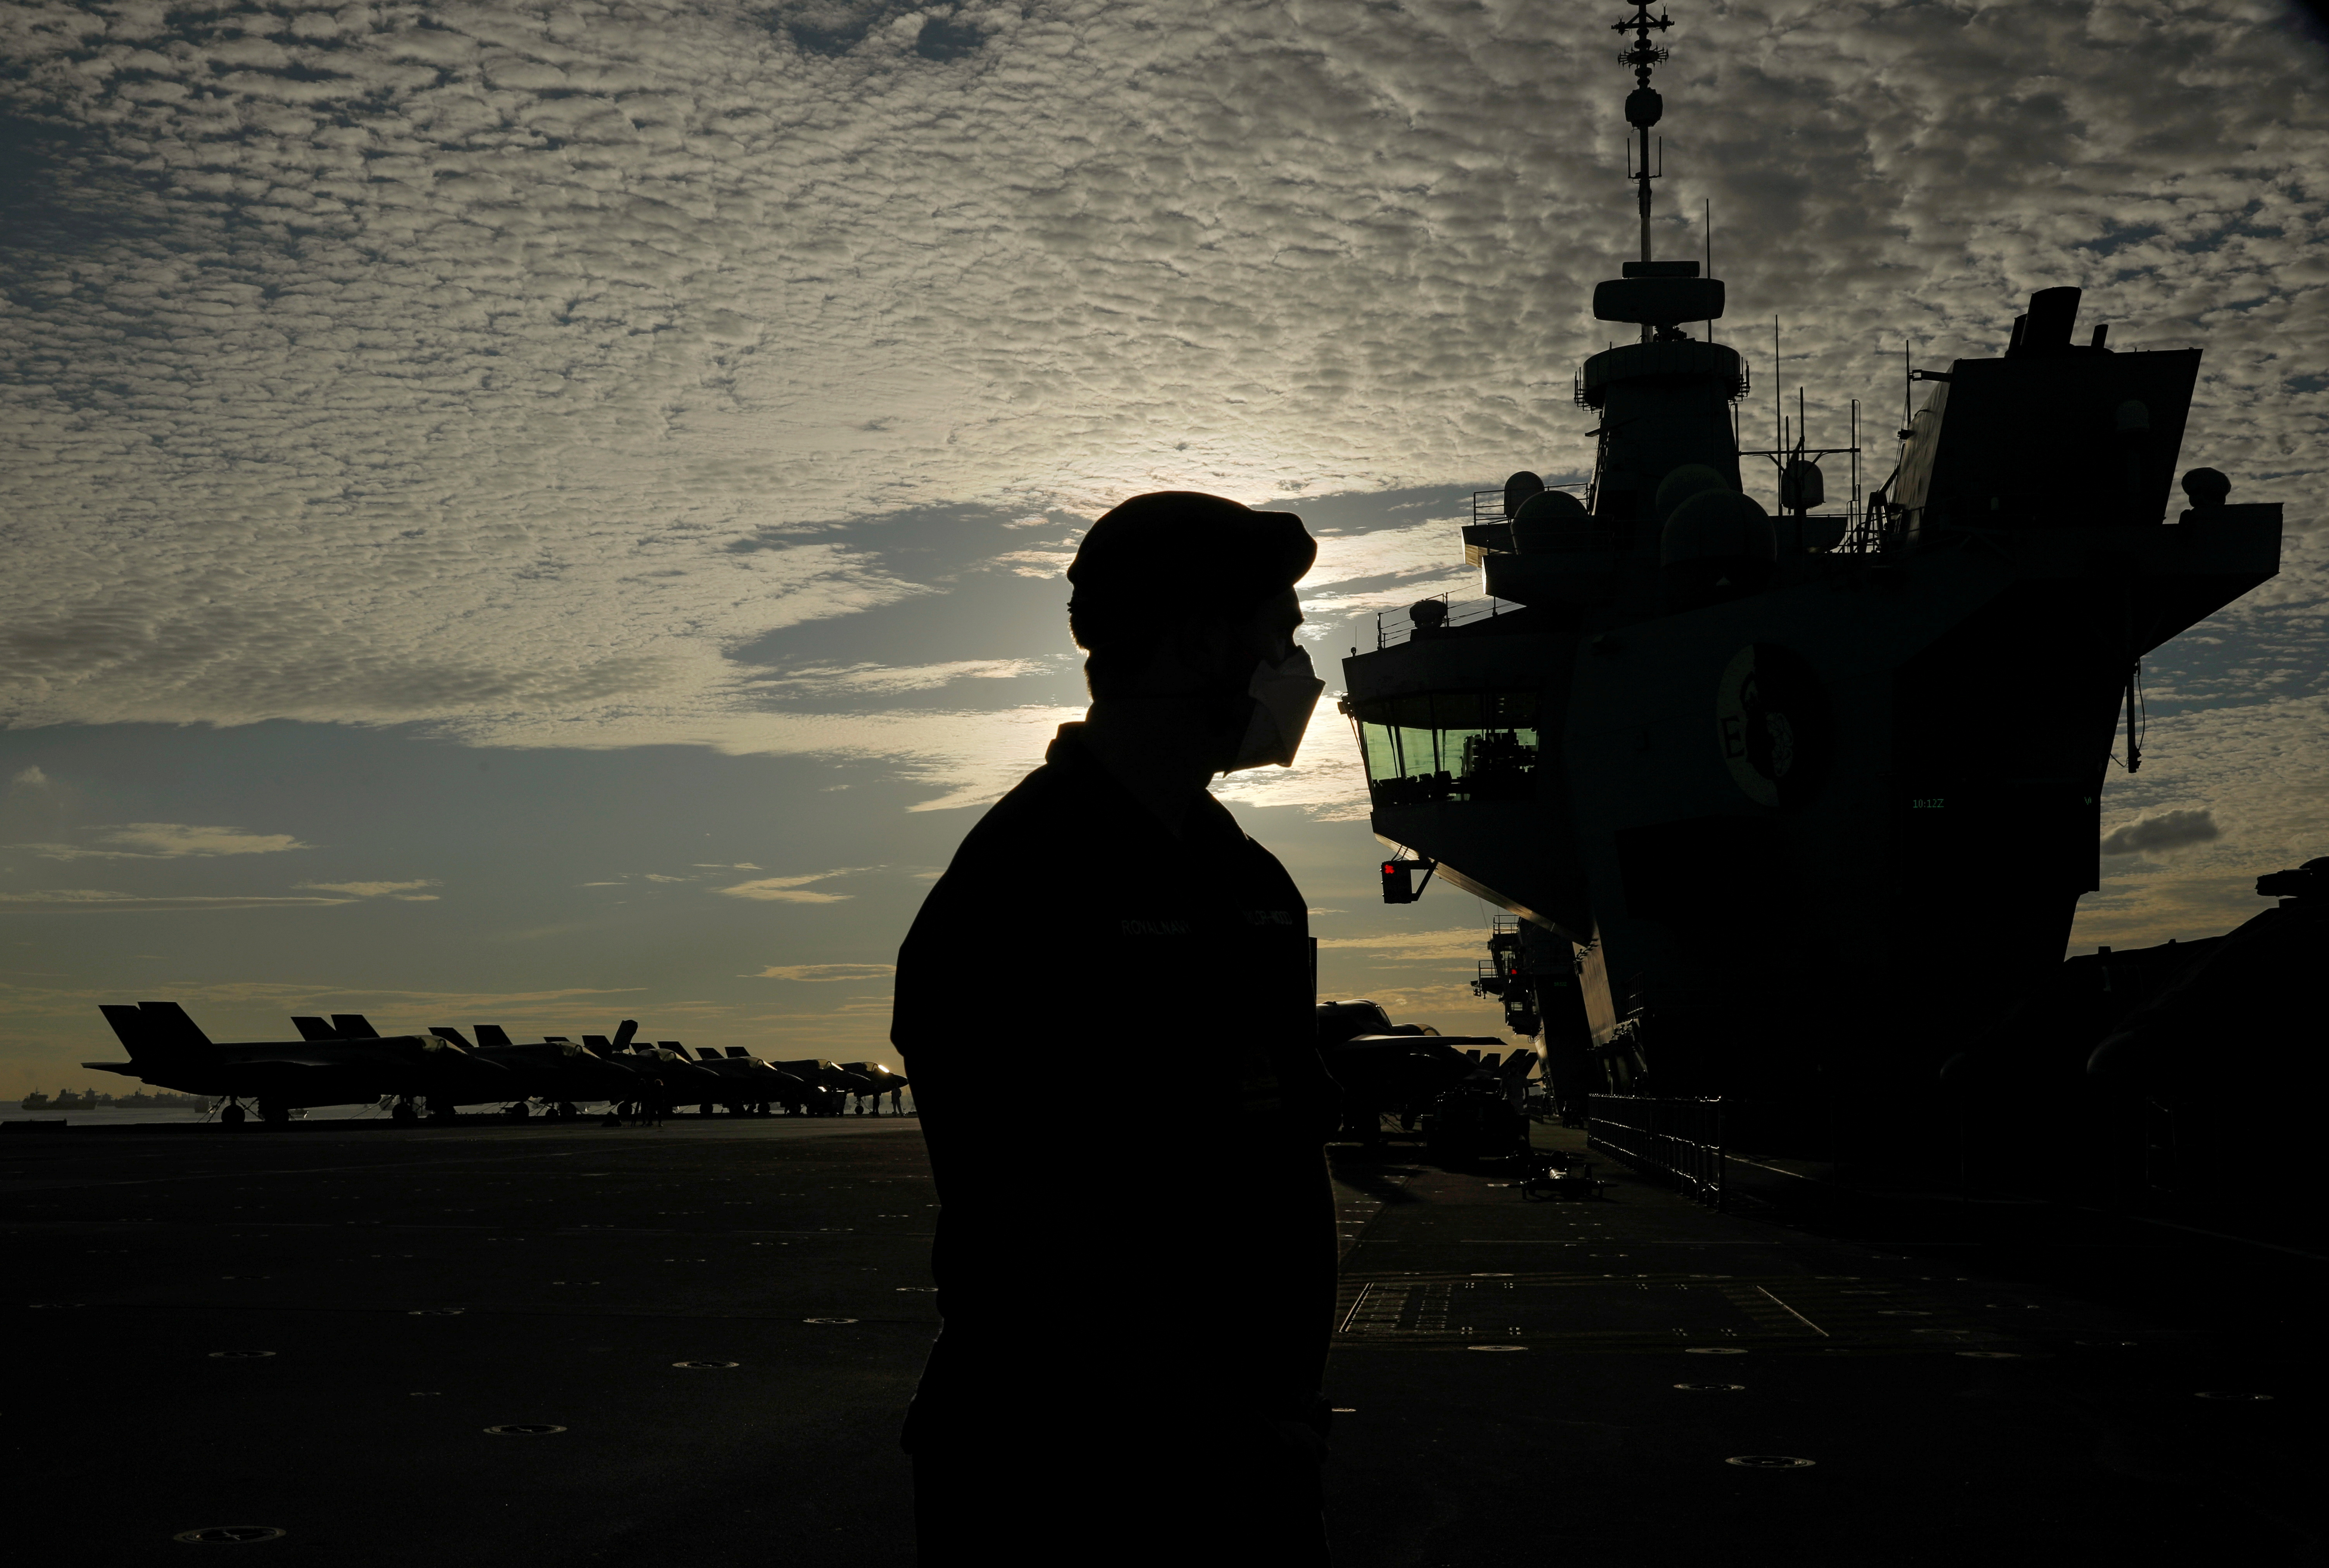 A member of navy personnel stands on the flight deck of Britain's HMS Queen Elizabeth aircraft carrier at Changi Naval Base in Singapore October 11, 2021. REUTERS/Edgar Su